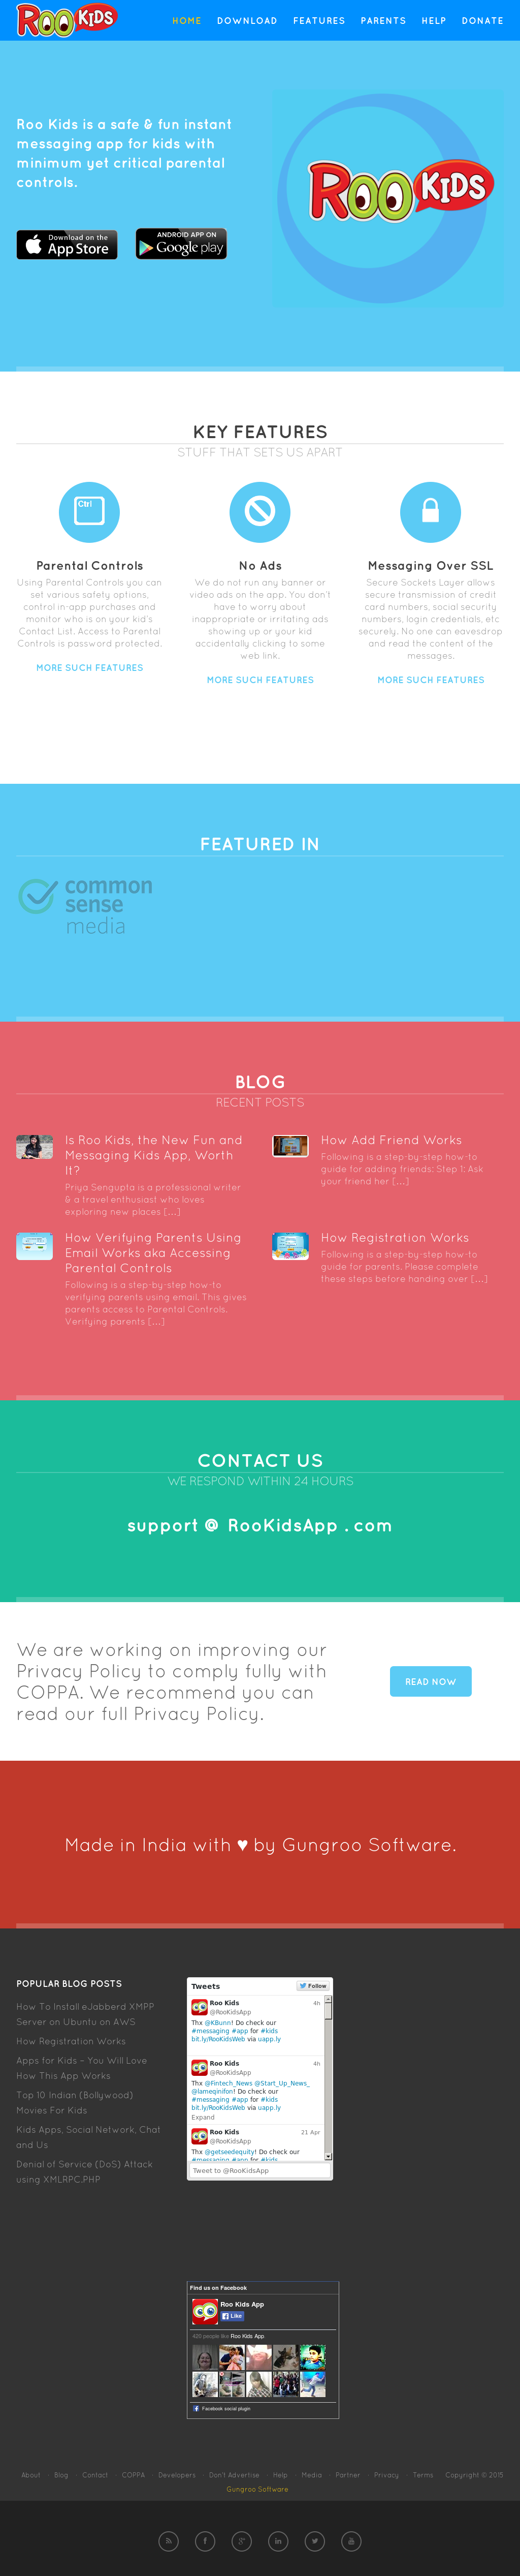 Roo Kids App Competitors, Revenue and Employees - Owler